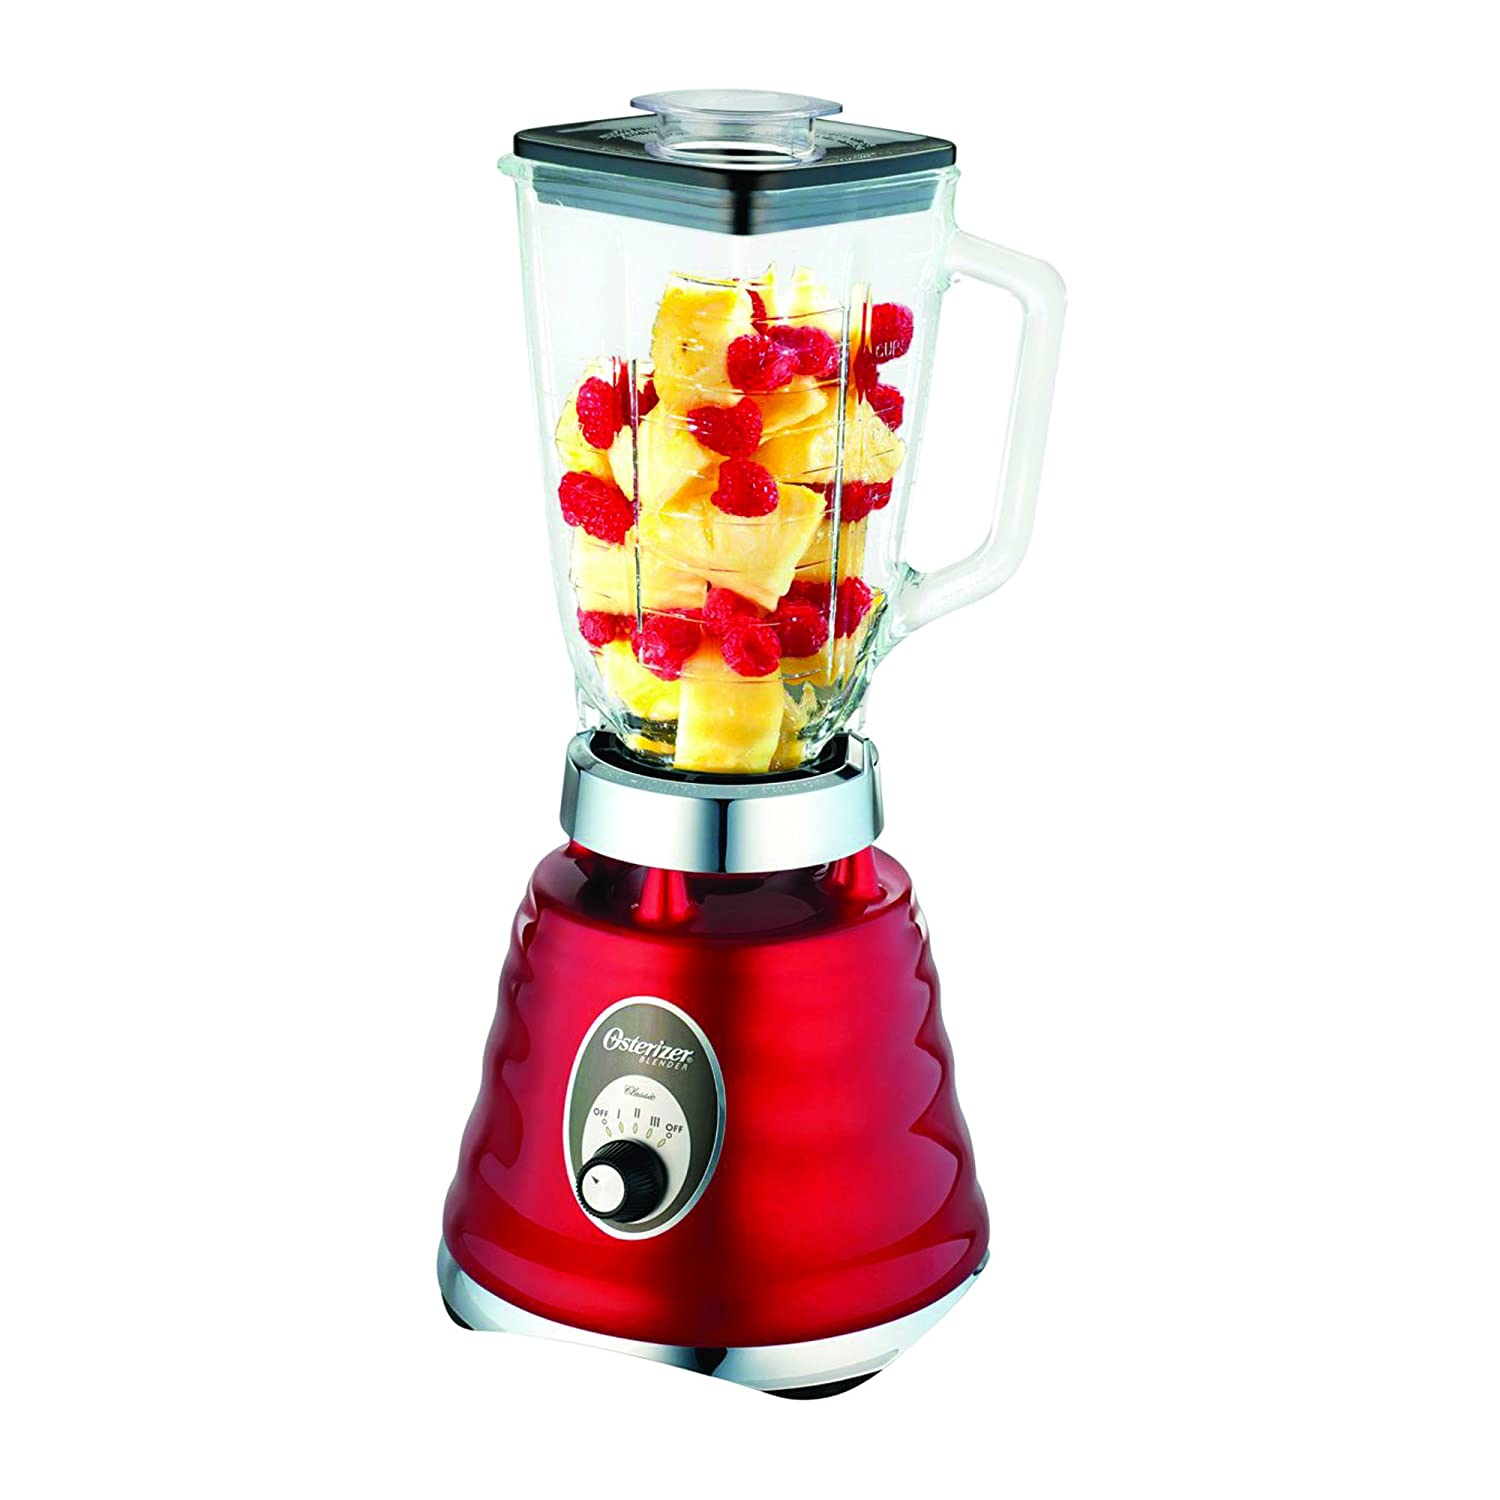 Oster 4126 3-Speed Chrome Retro Blender with 5-Cup Glass Jar, 220-volt (Not for USA - European Cord)